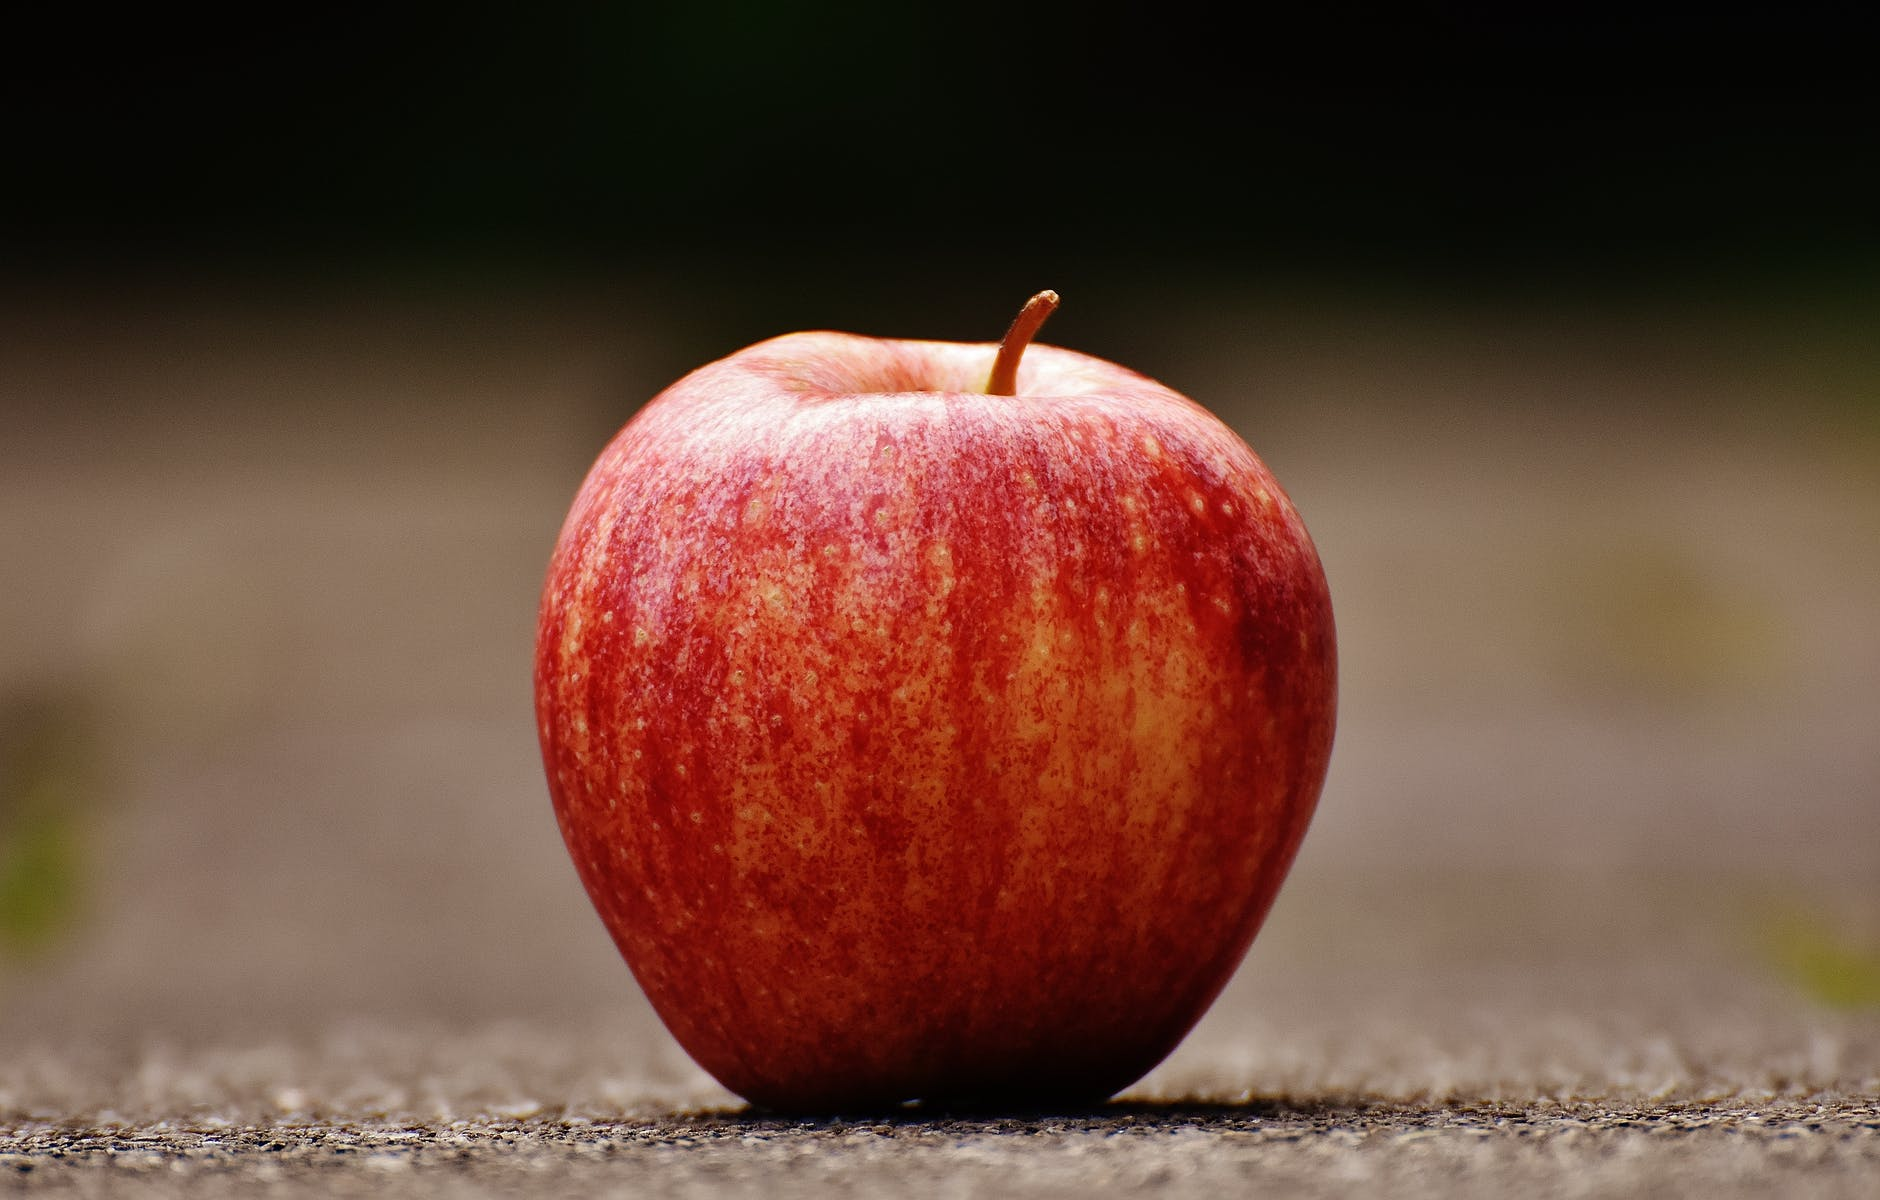 How To Grow Apples From Seeds | Garden Season Growing Guide